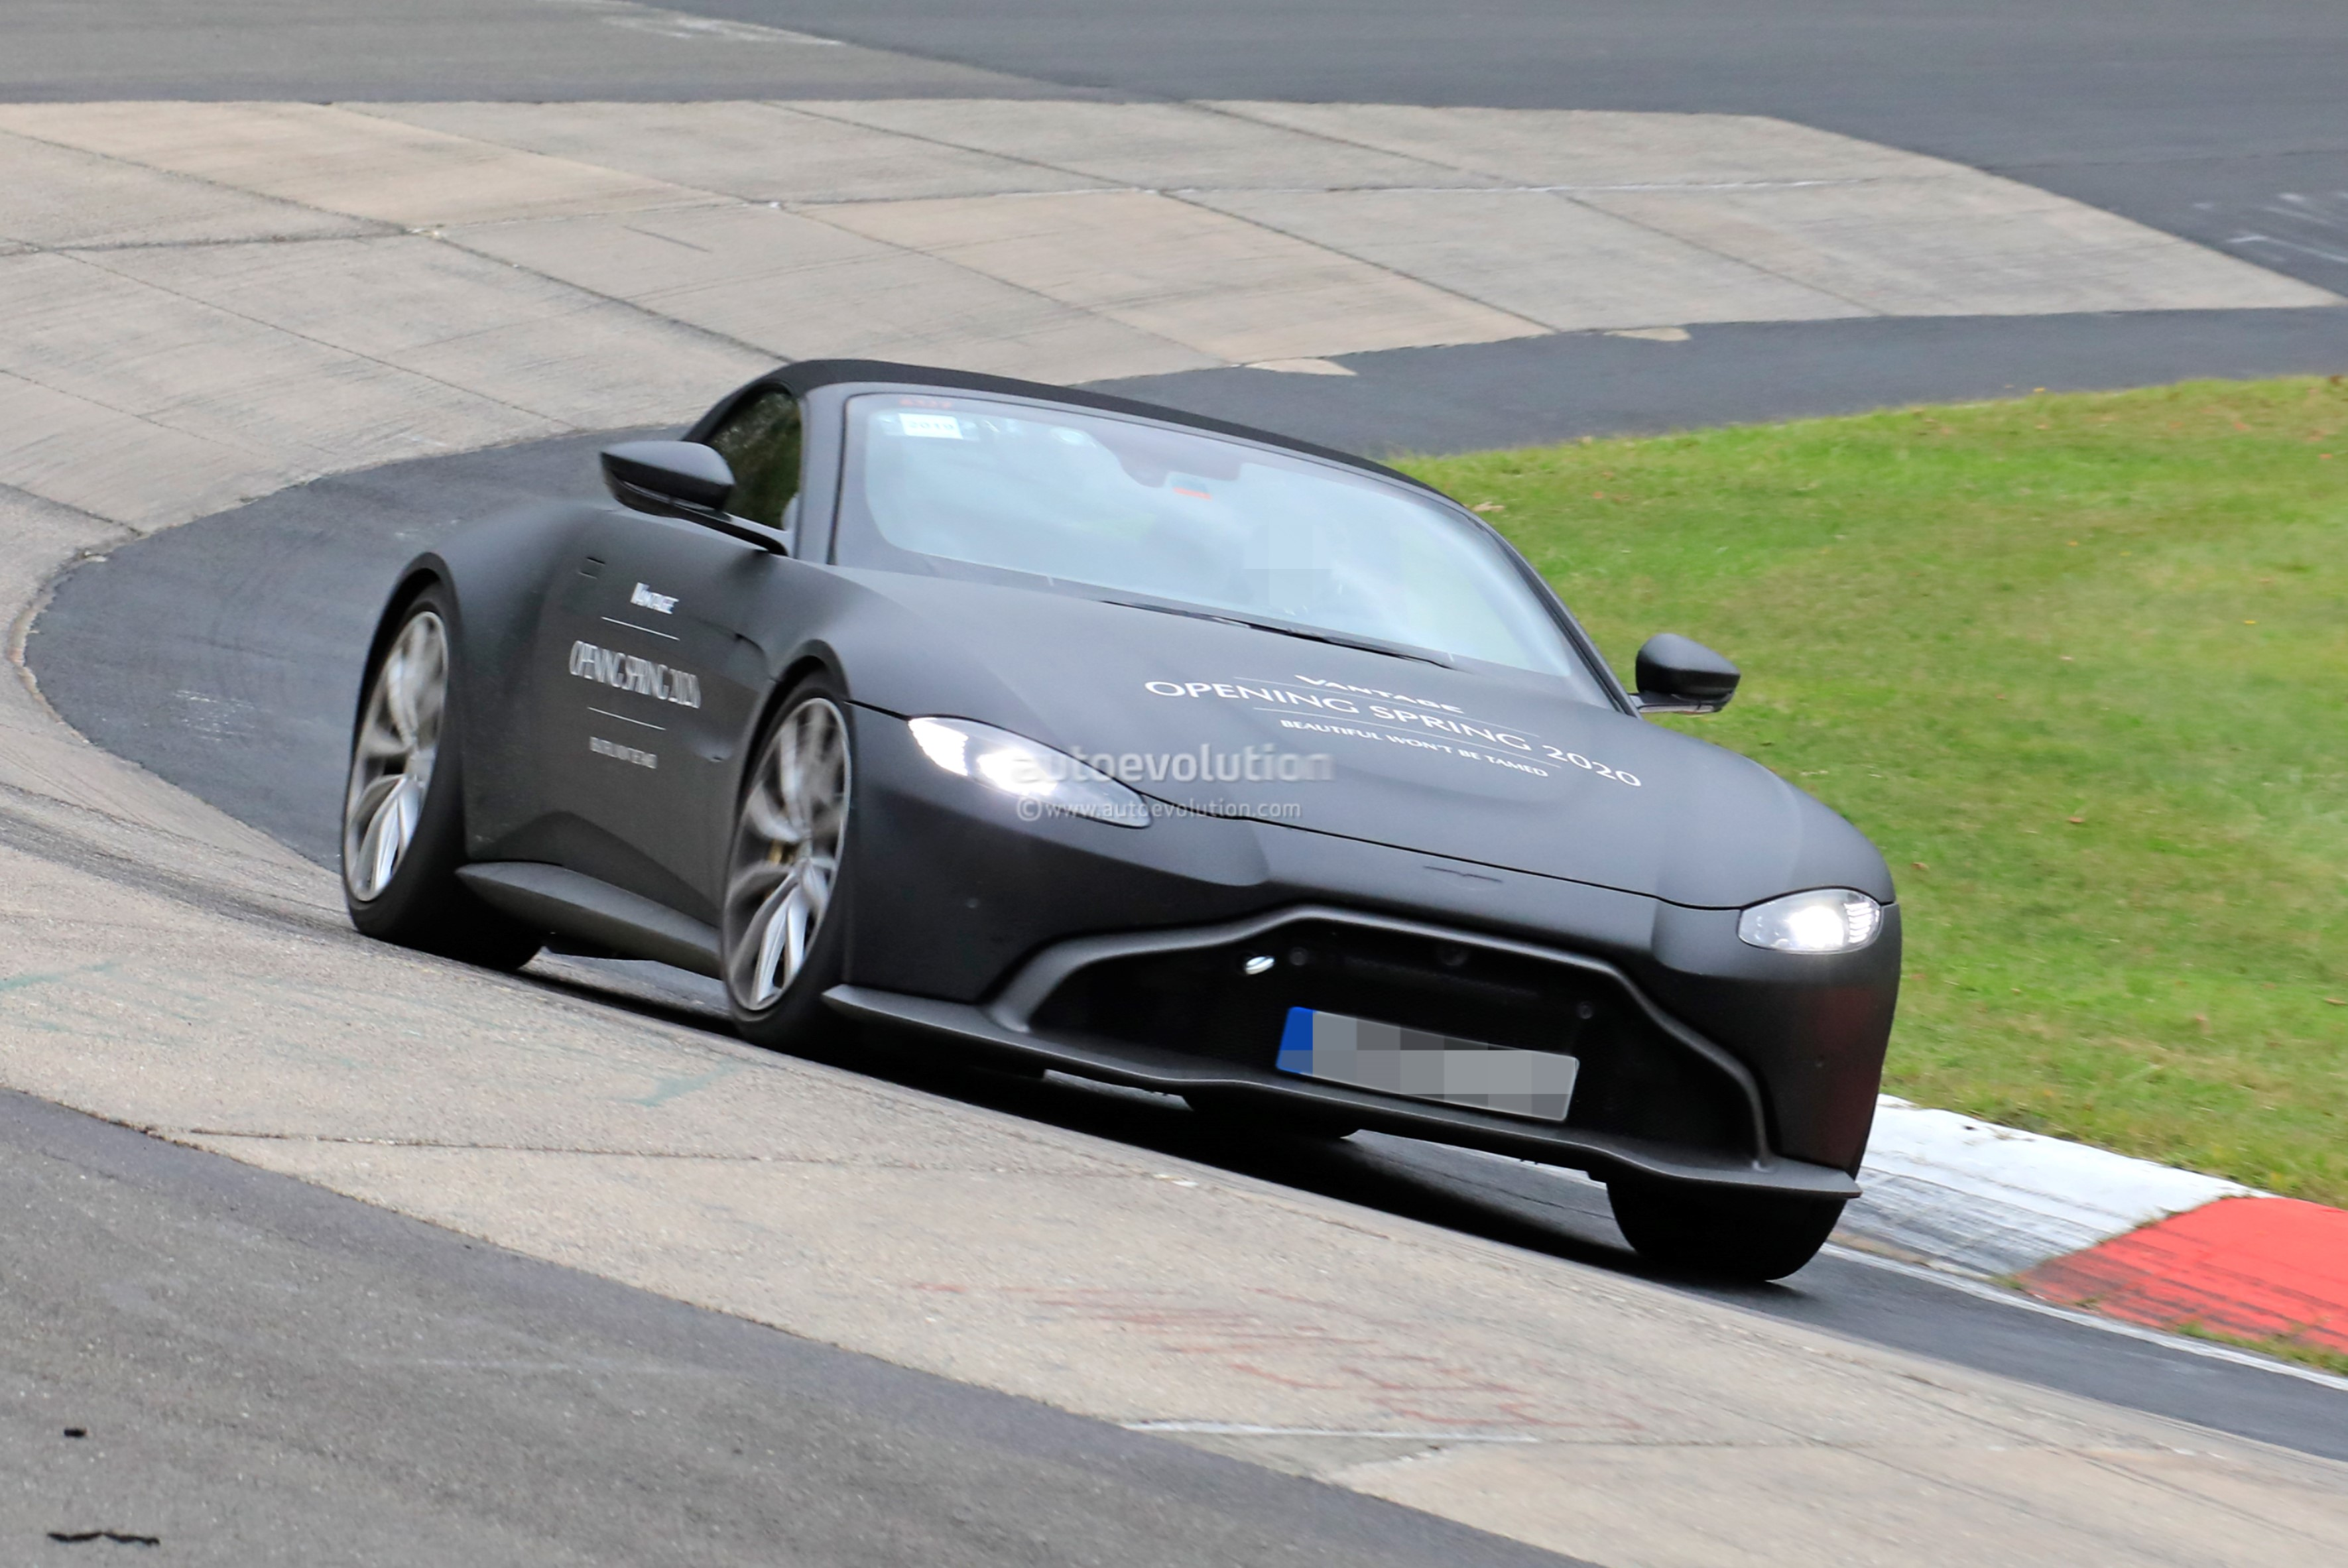 New Aston Martin >> New Aston Martin Spied Testing At The Nurburgring It S The